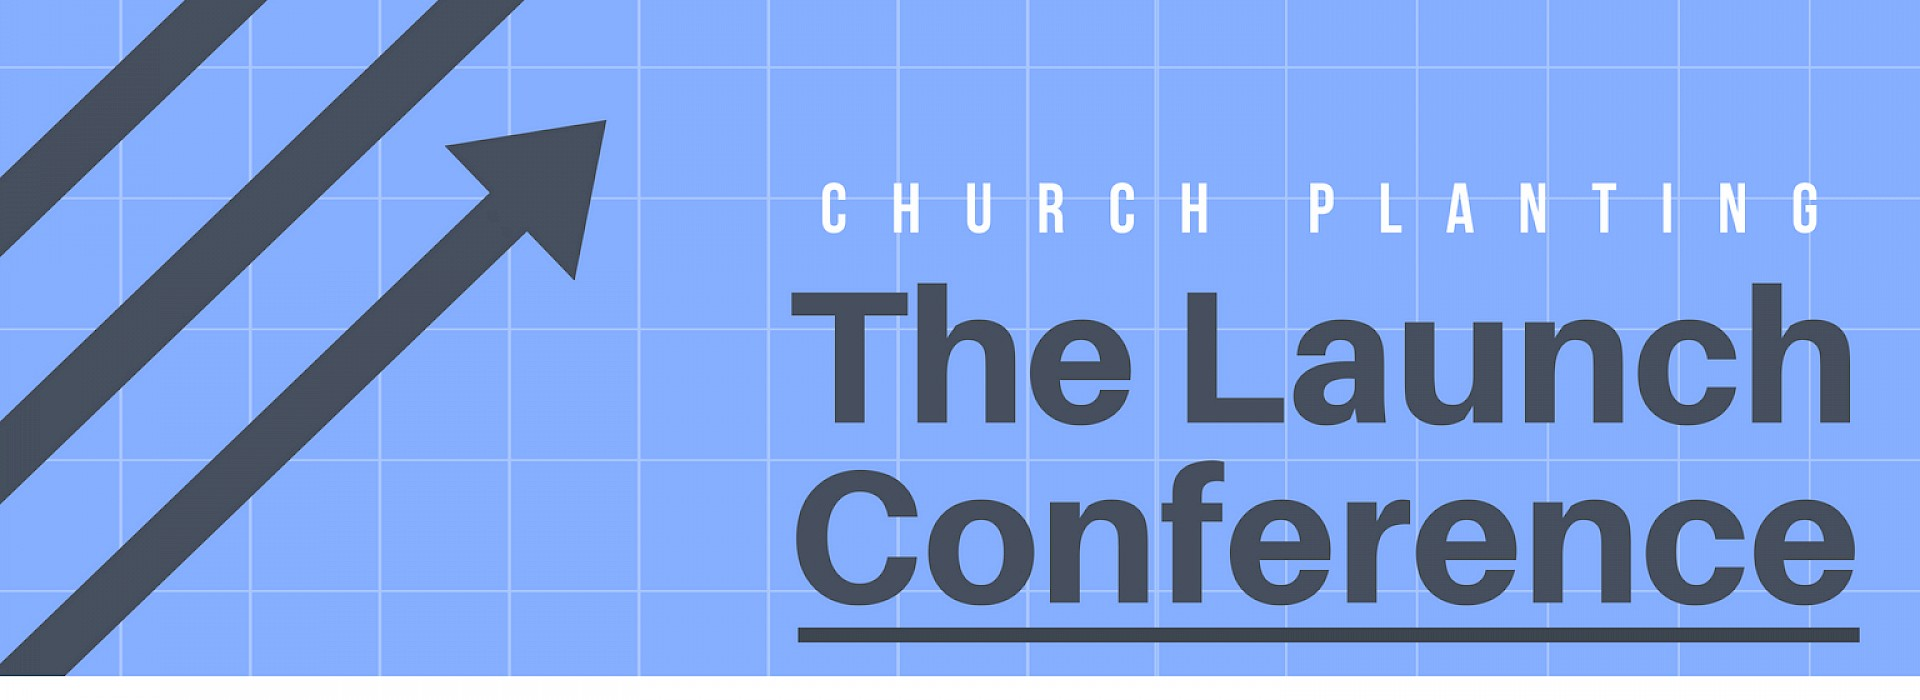 Church Planting - The Launch Conference Featured Image